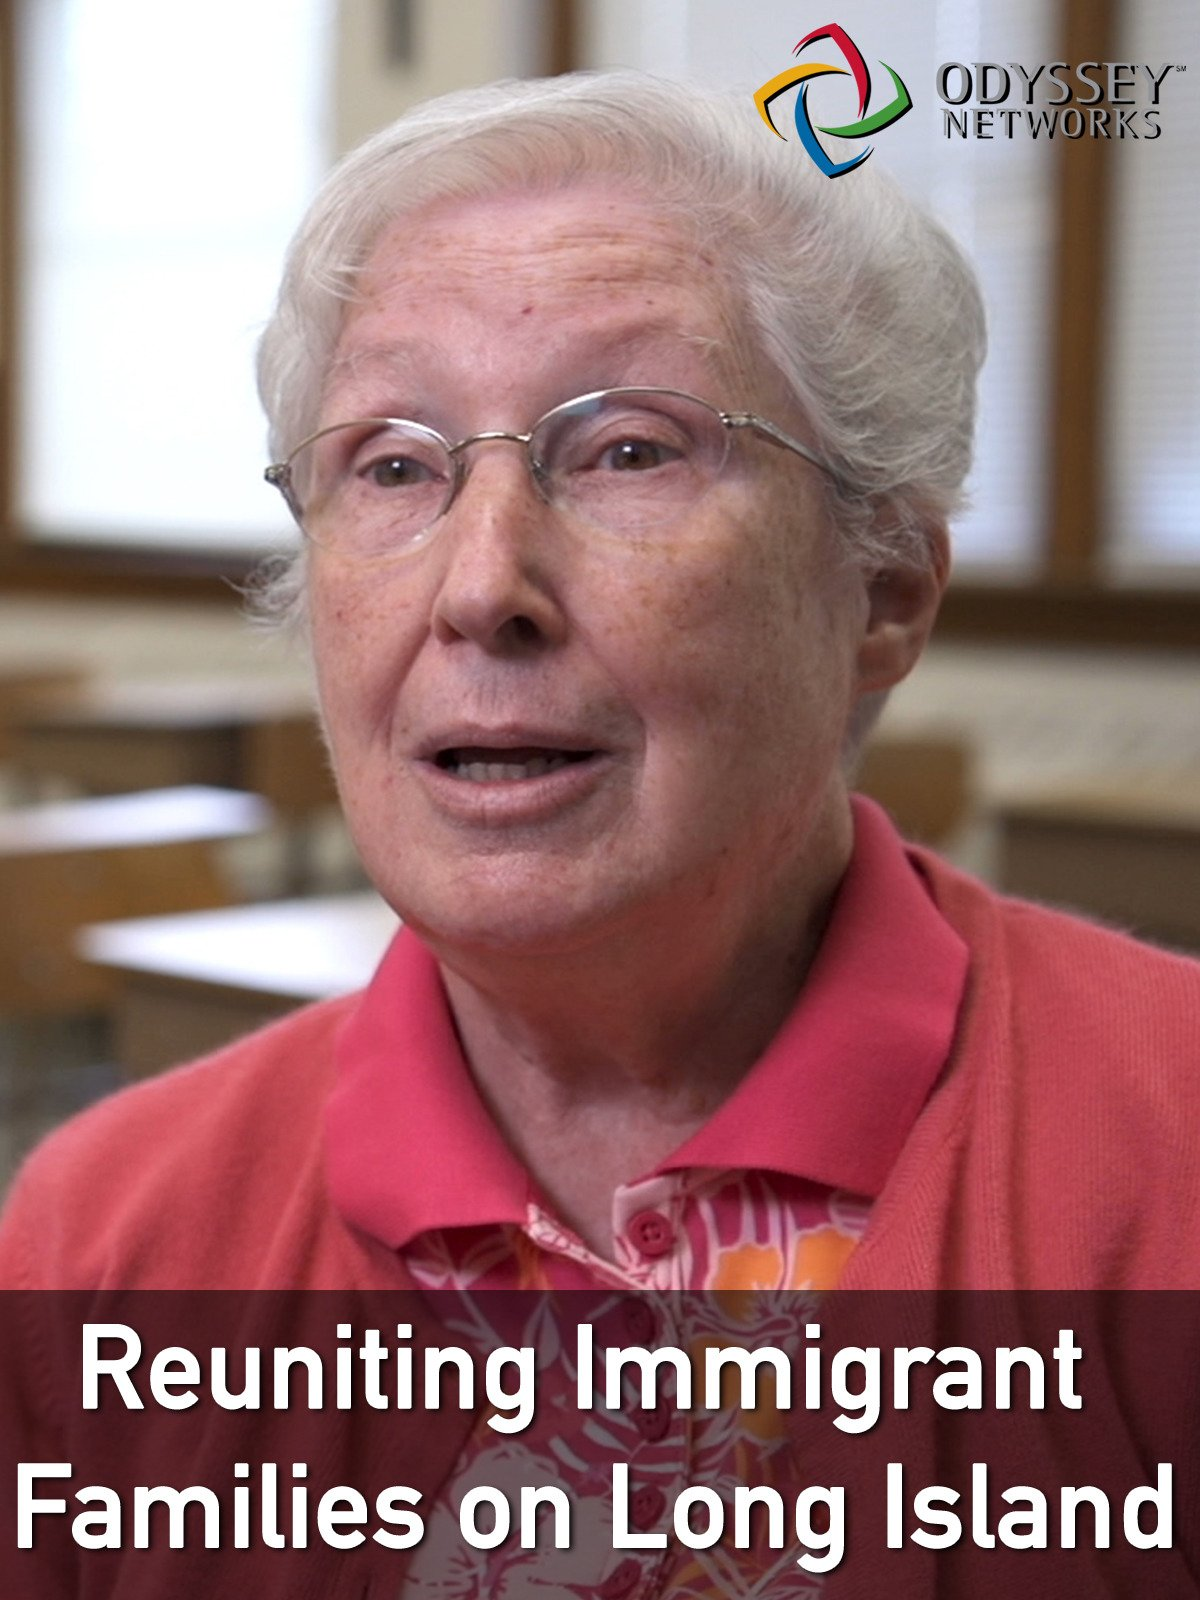 Clip: Reuniting Immigrant Families on Long Island